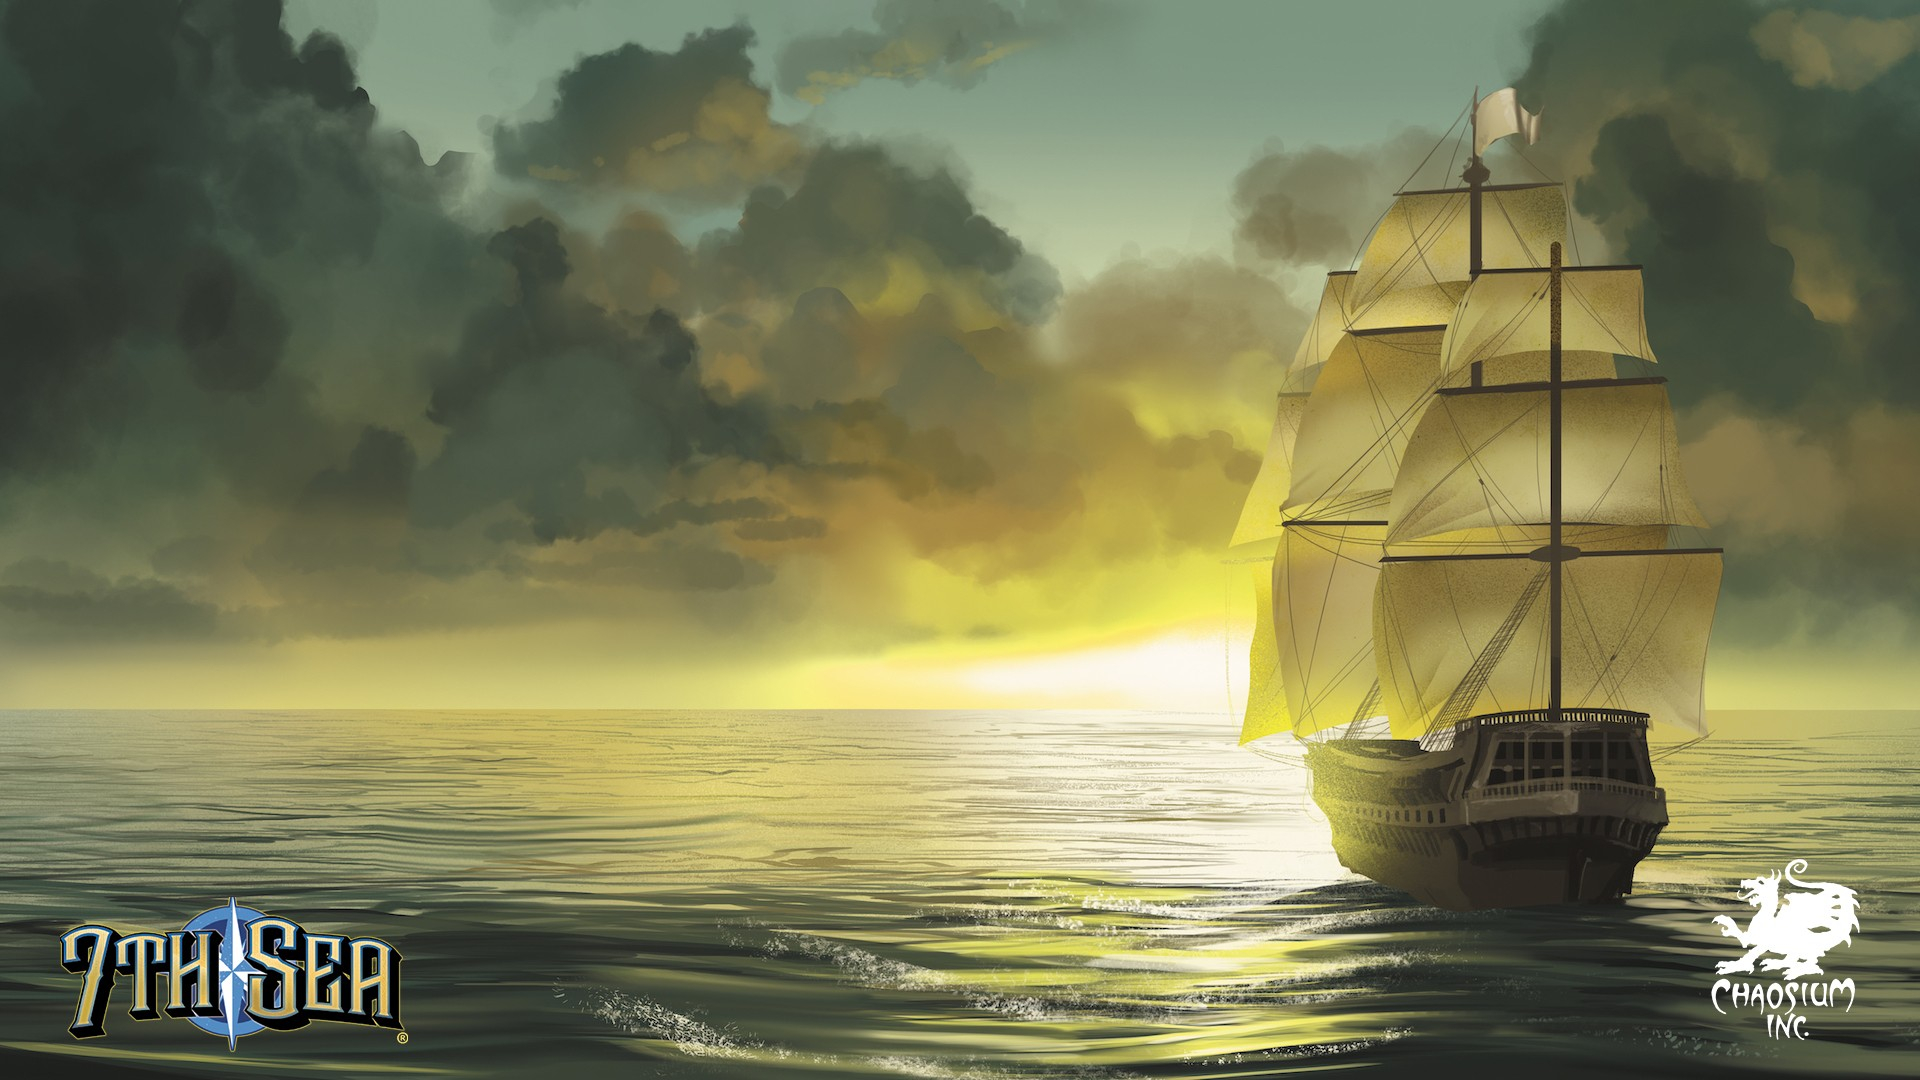 7th sea virtual backgrounds for online gaming